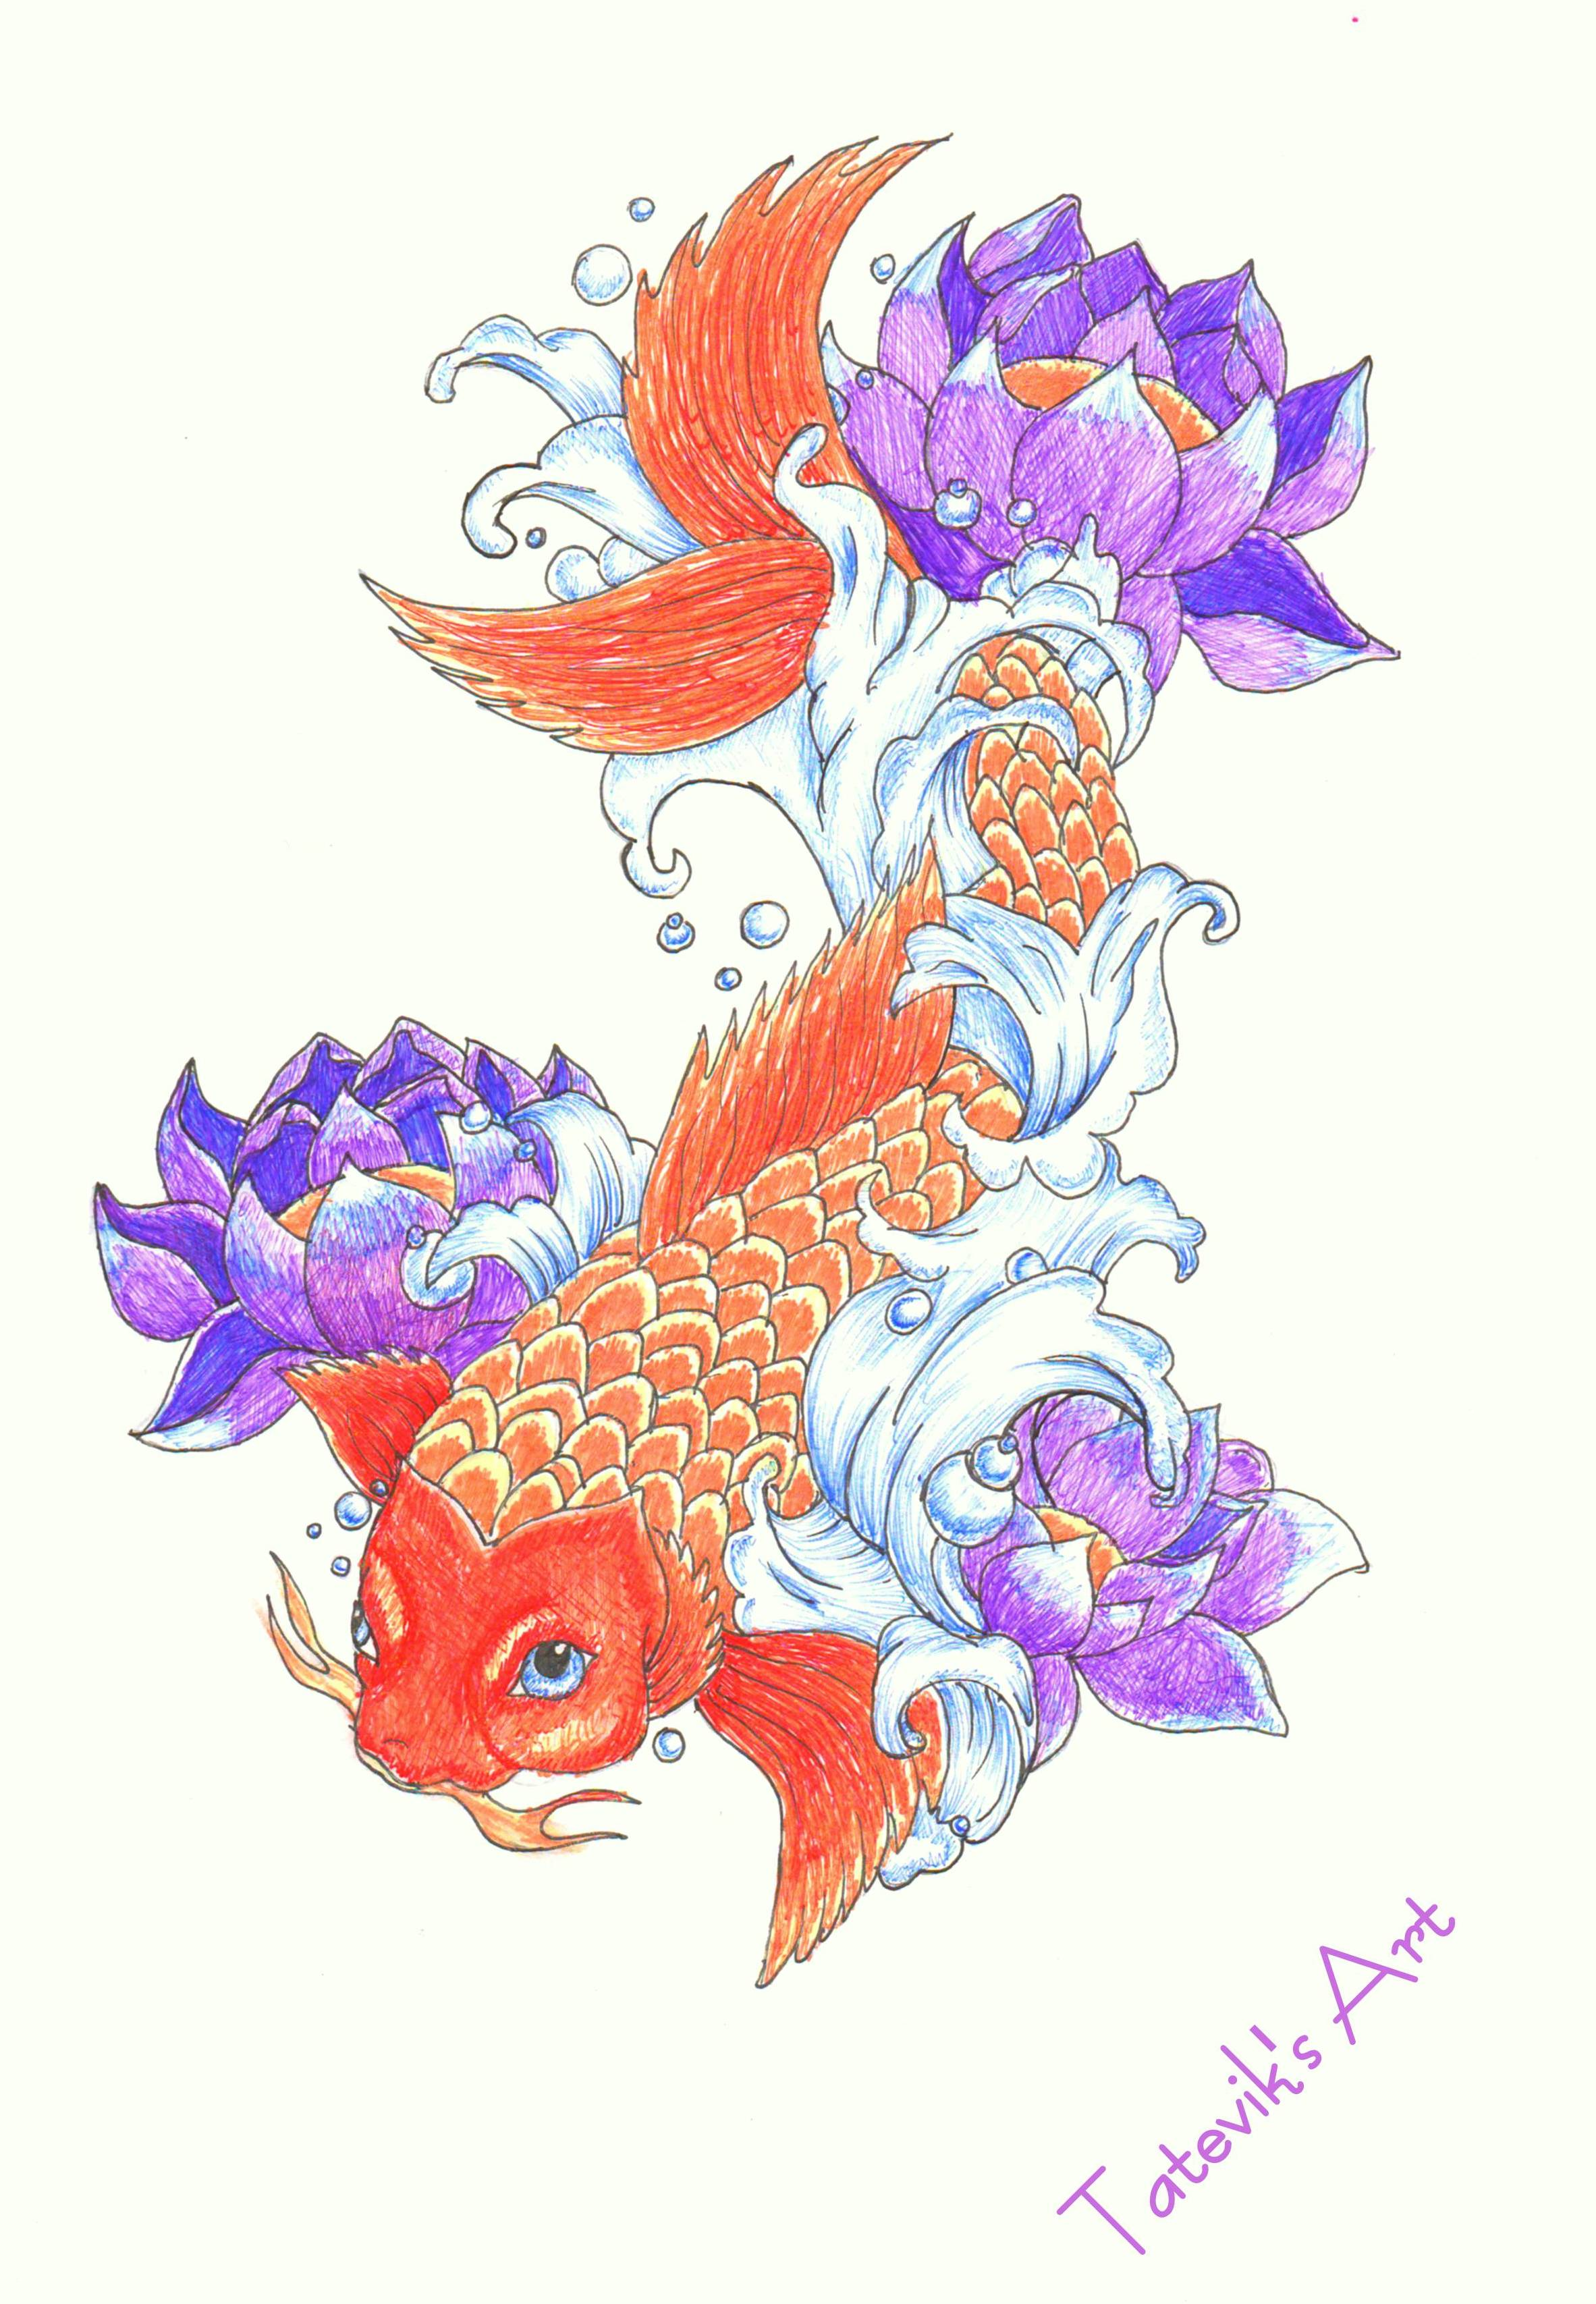 Japanese style, fish, lotus, koi carp by TatevikArt on DeviantArt